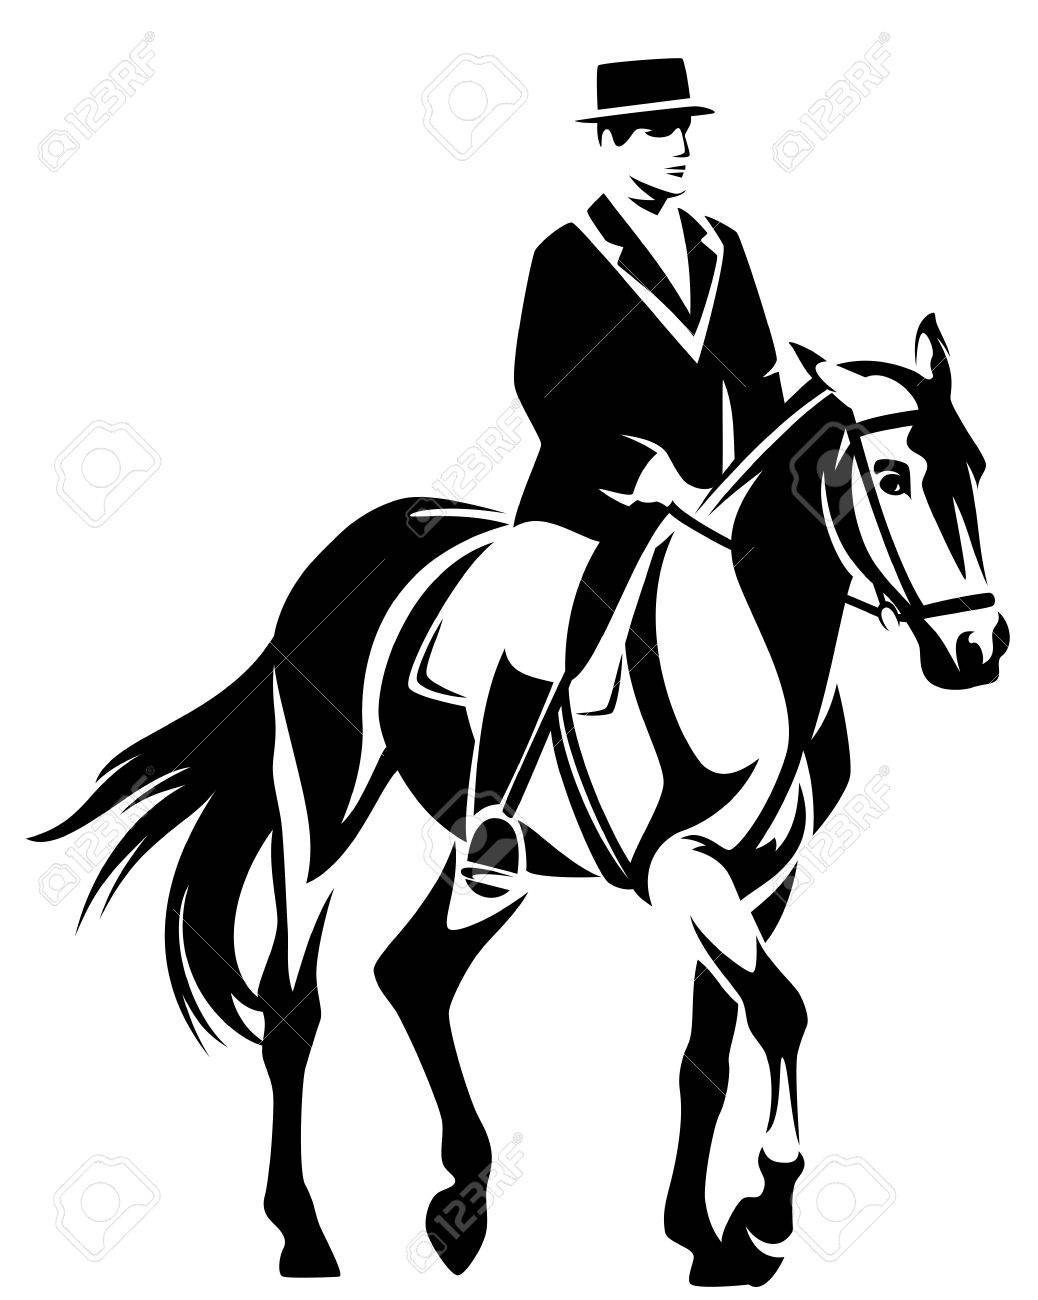 Design Dressage dressage black and white